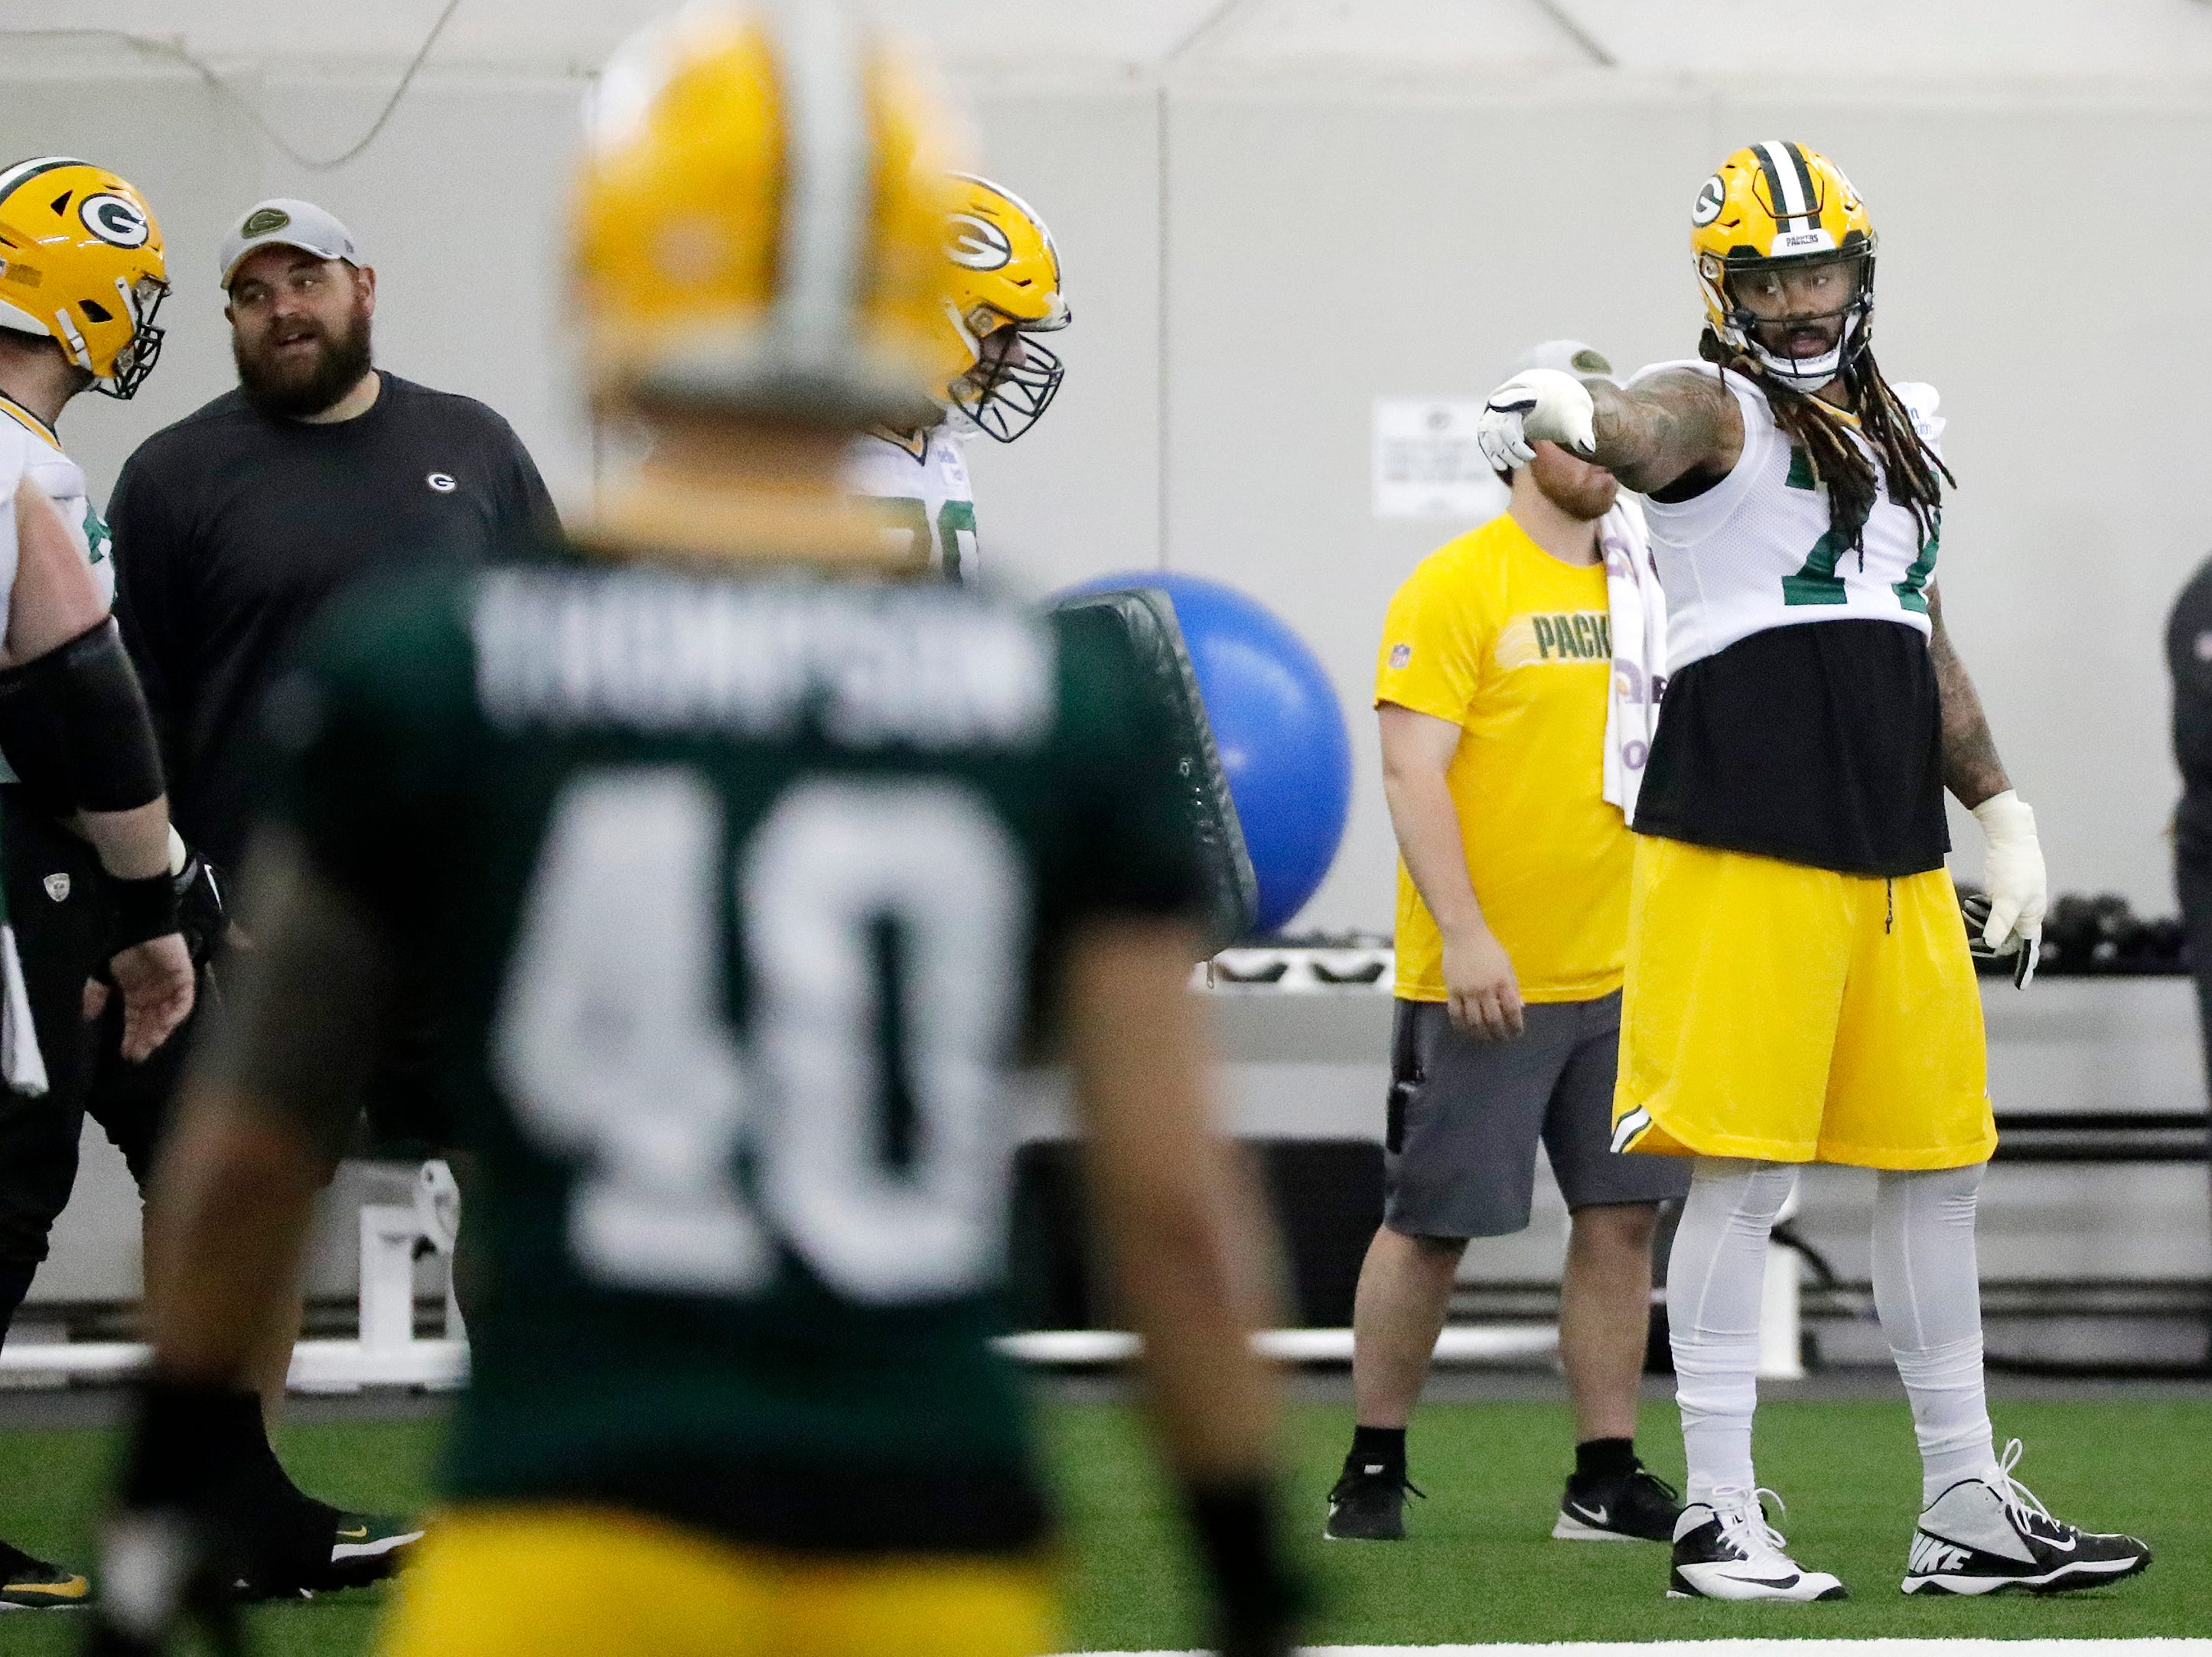 Green Bay Packers offensive tackle Billy Turner (77) during a team practice at the Don Hutson Center on Wednesday, April 24, 2019 in Ashwaubenon, Wis.